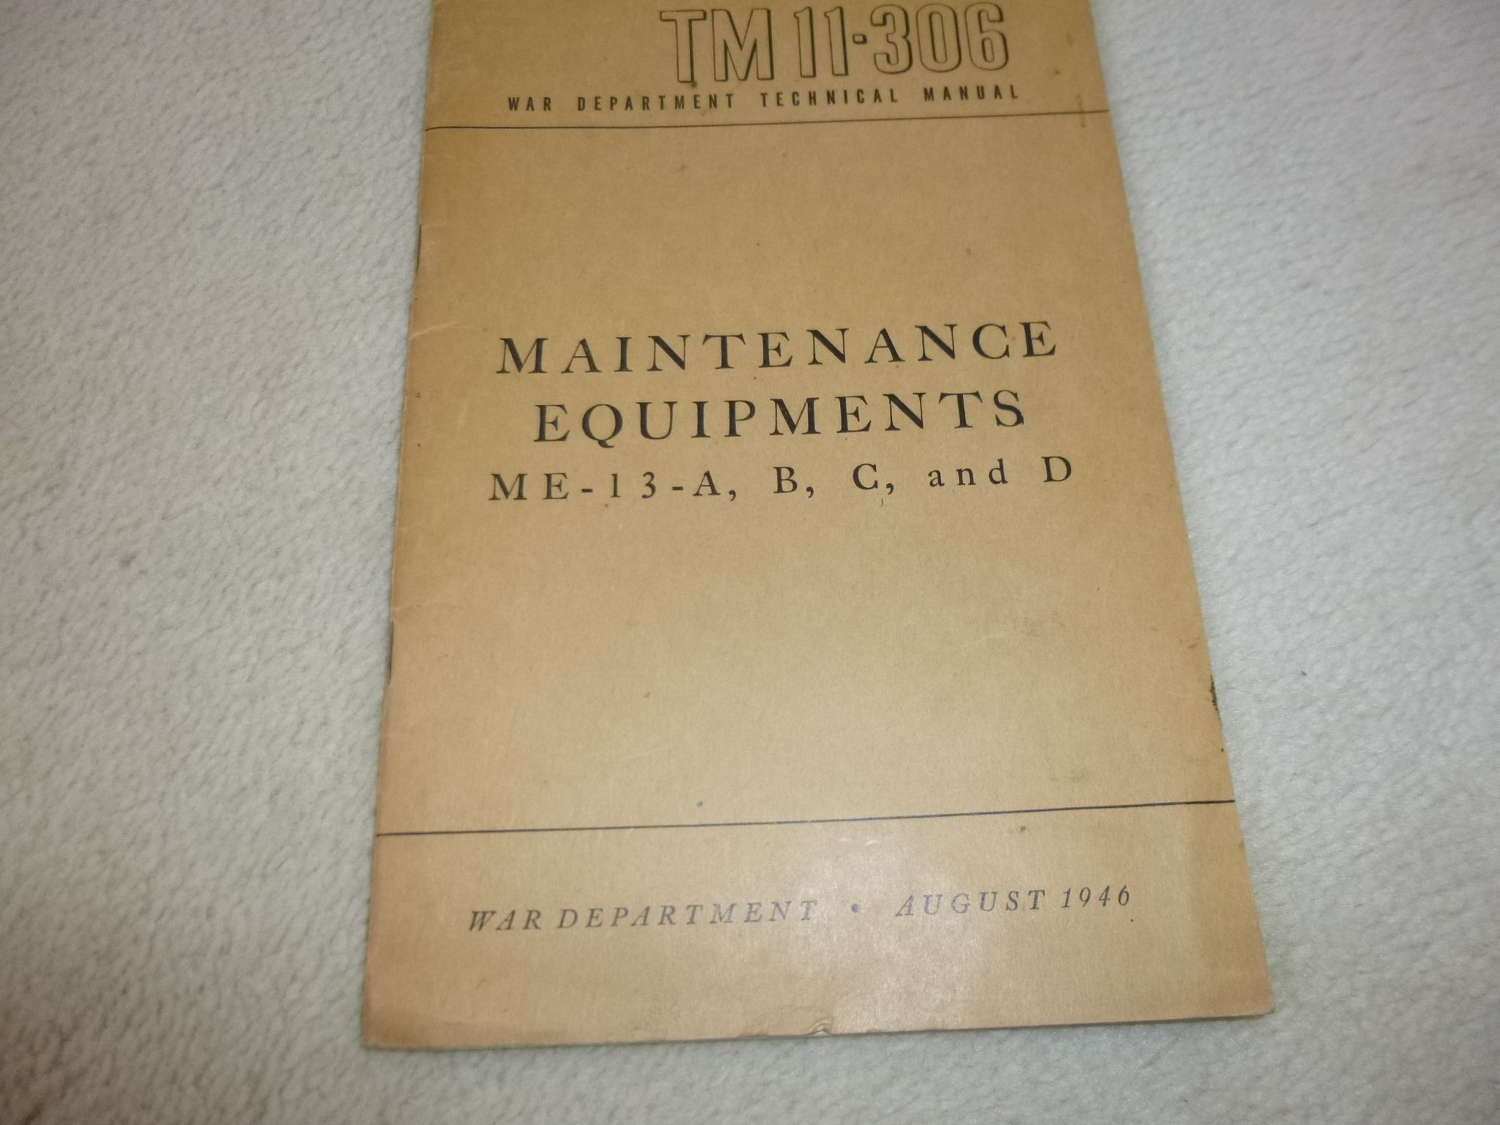 US Army TM11-306 Maintenance Equipment ME-13 Manual